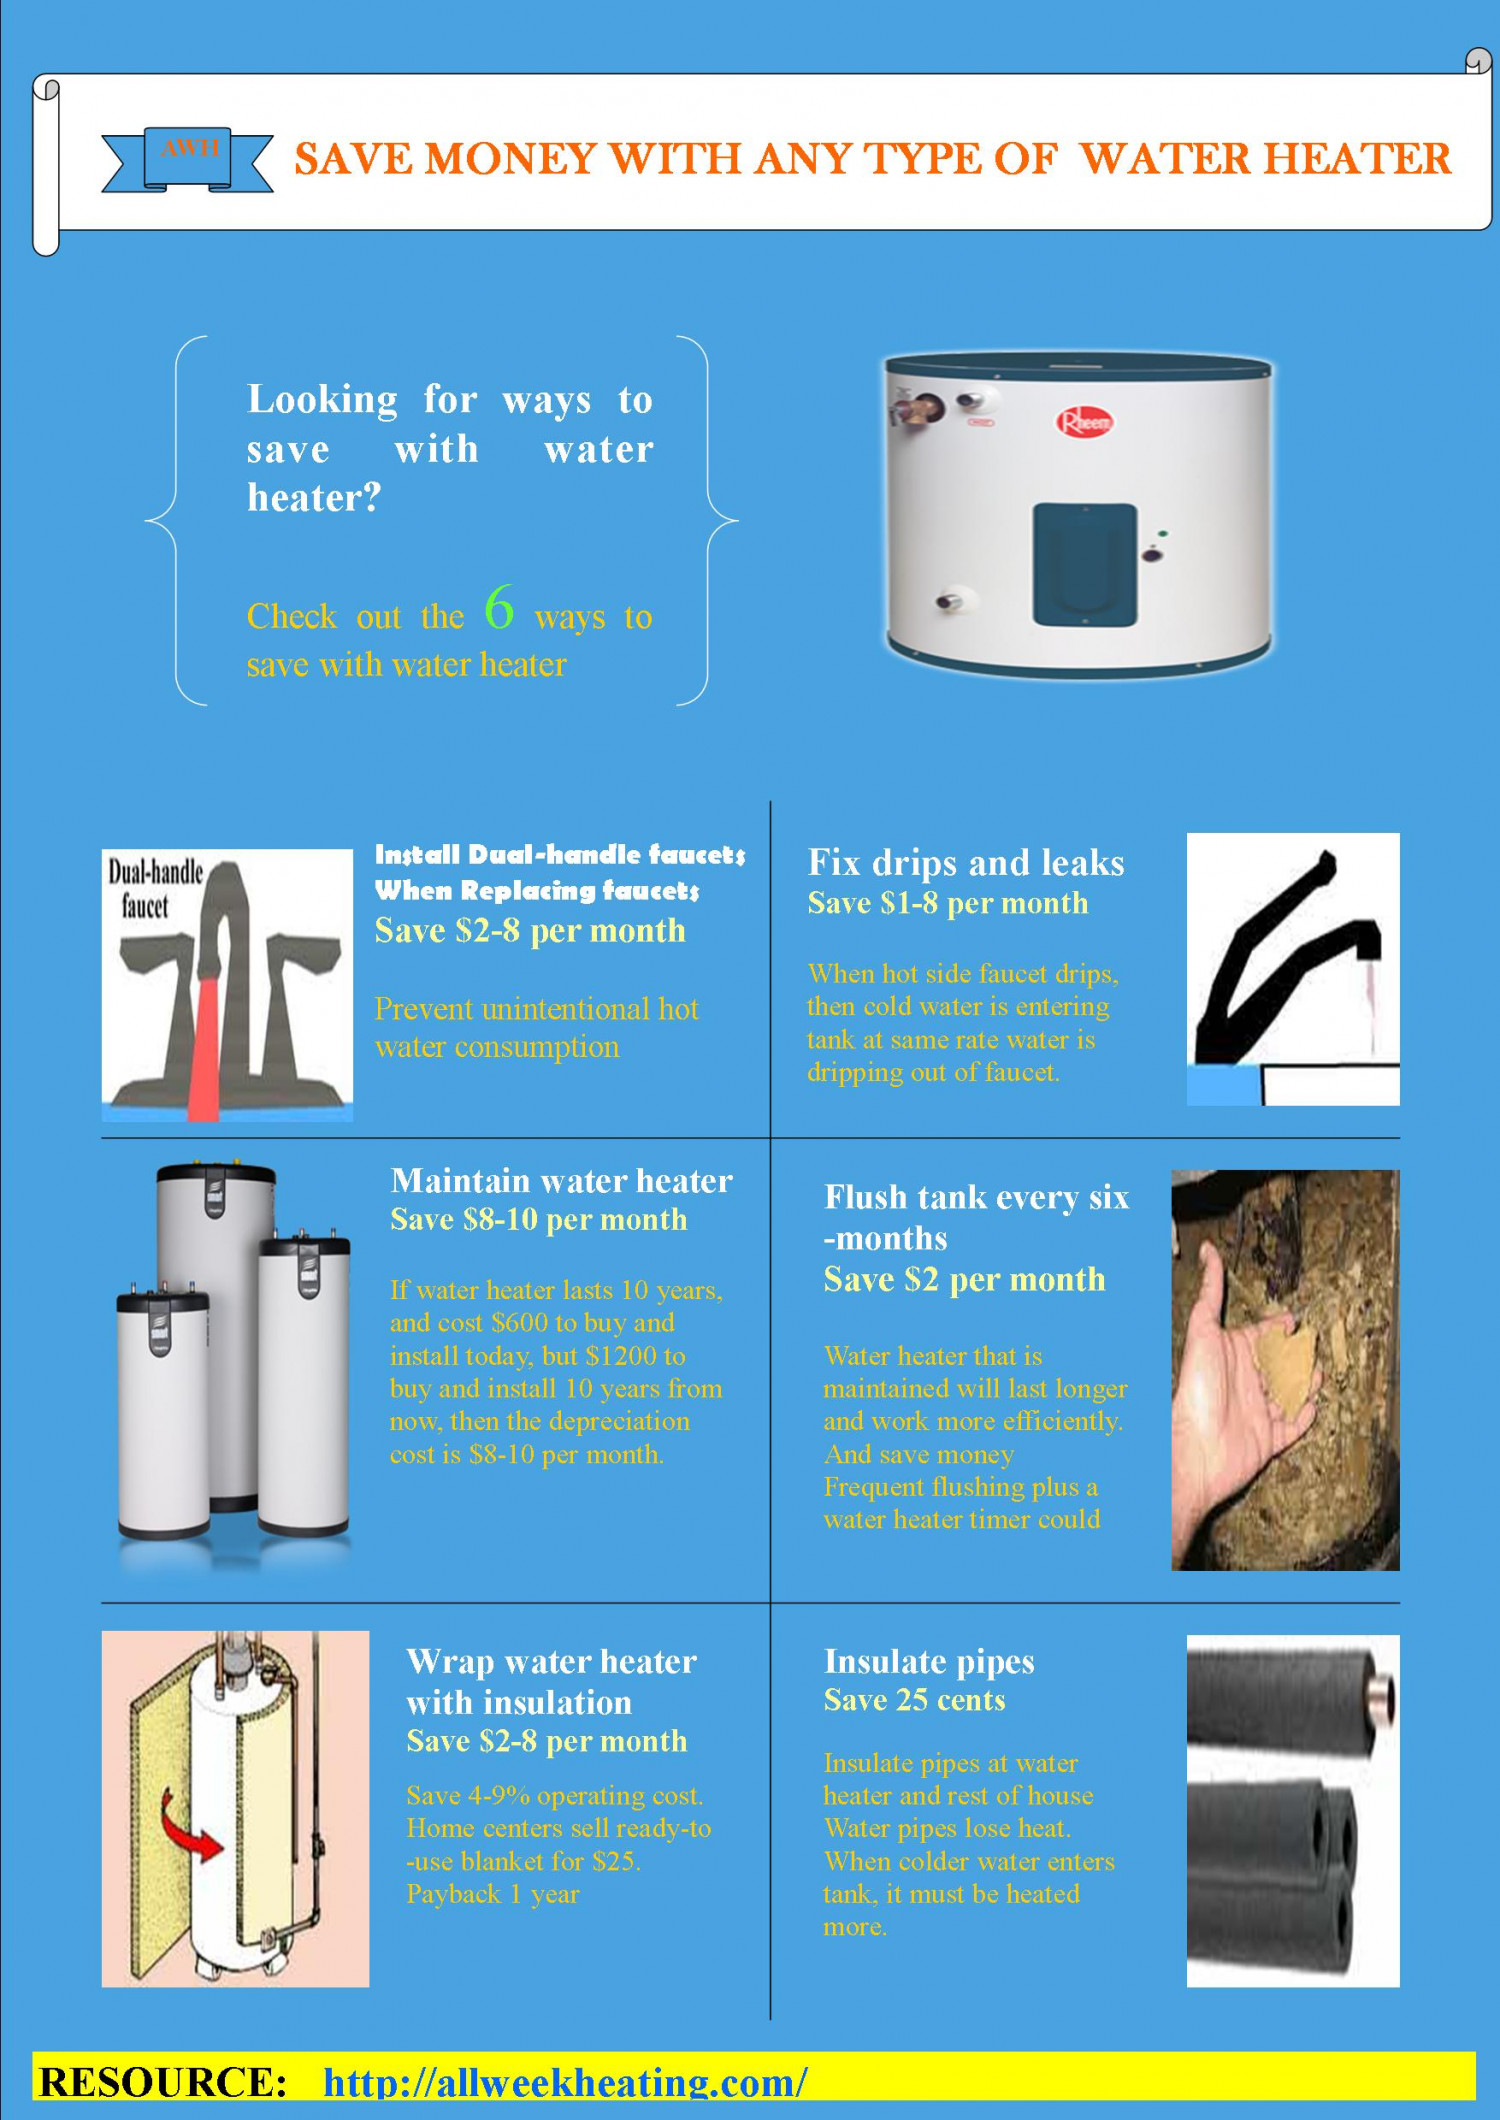 Save money with water heater | Visual.ly